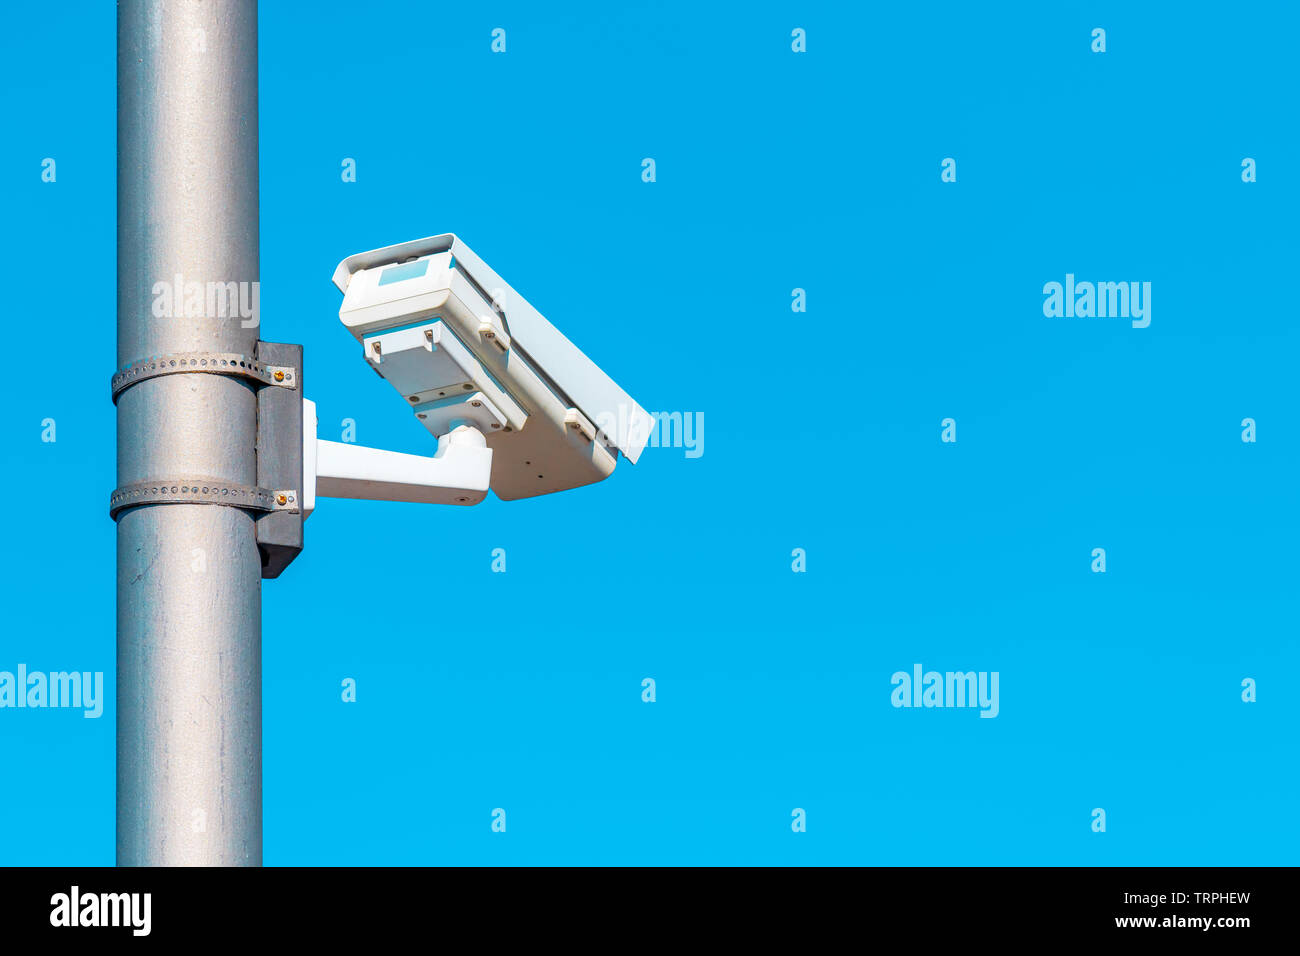 Traffic surveillance camera mounted on the post with large portion of blue sky as copy space Stock Photo